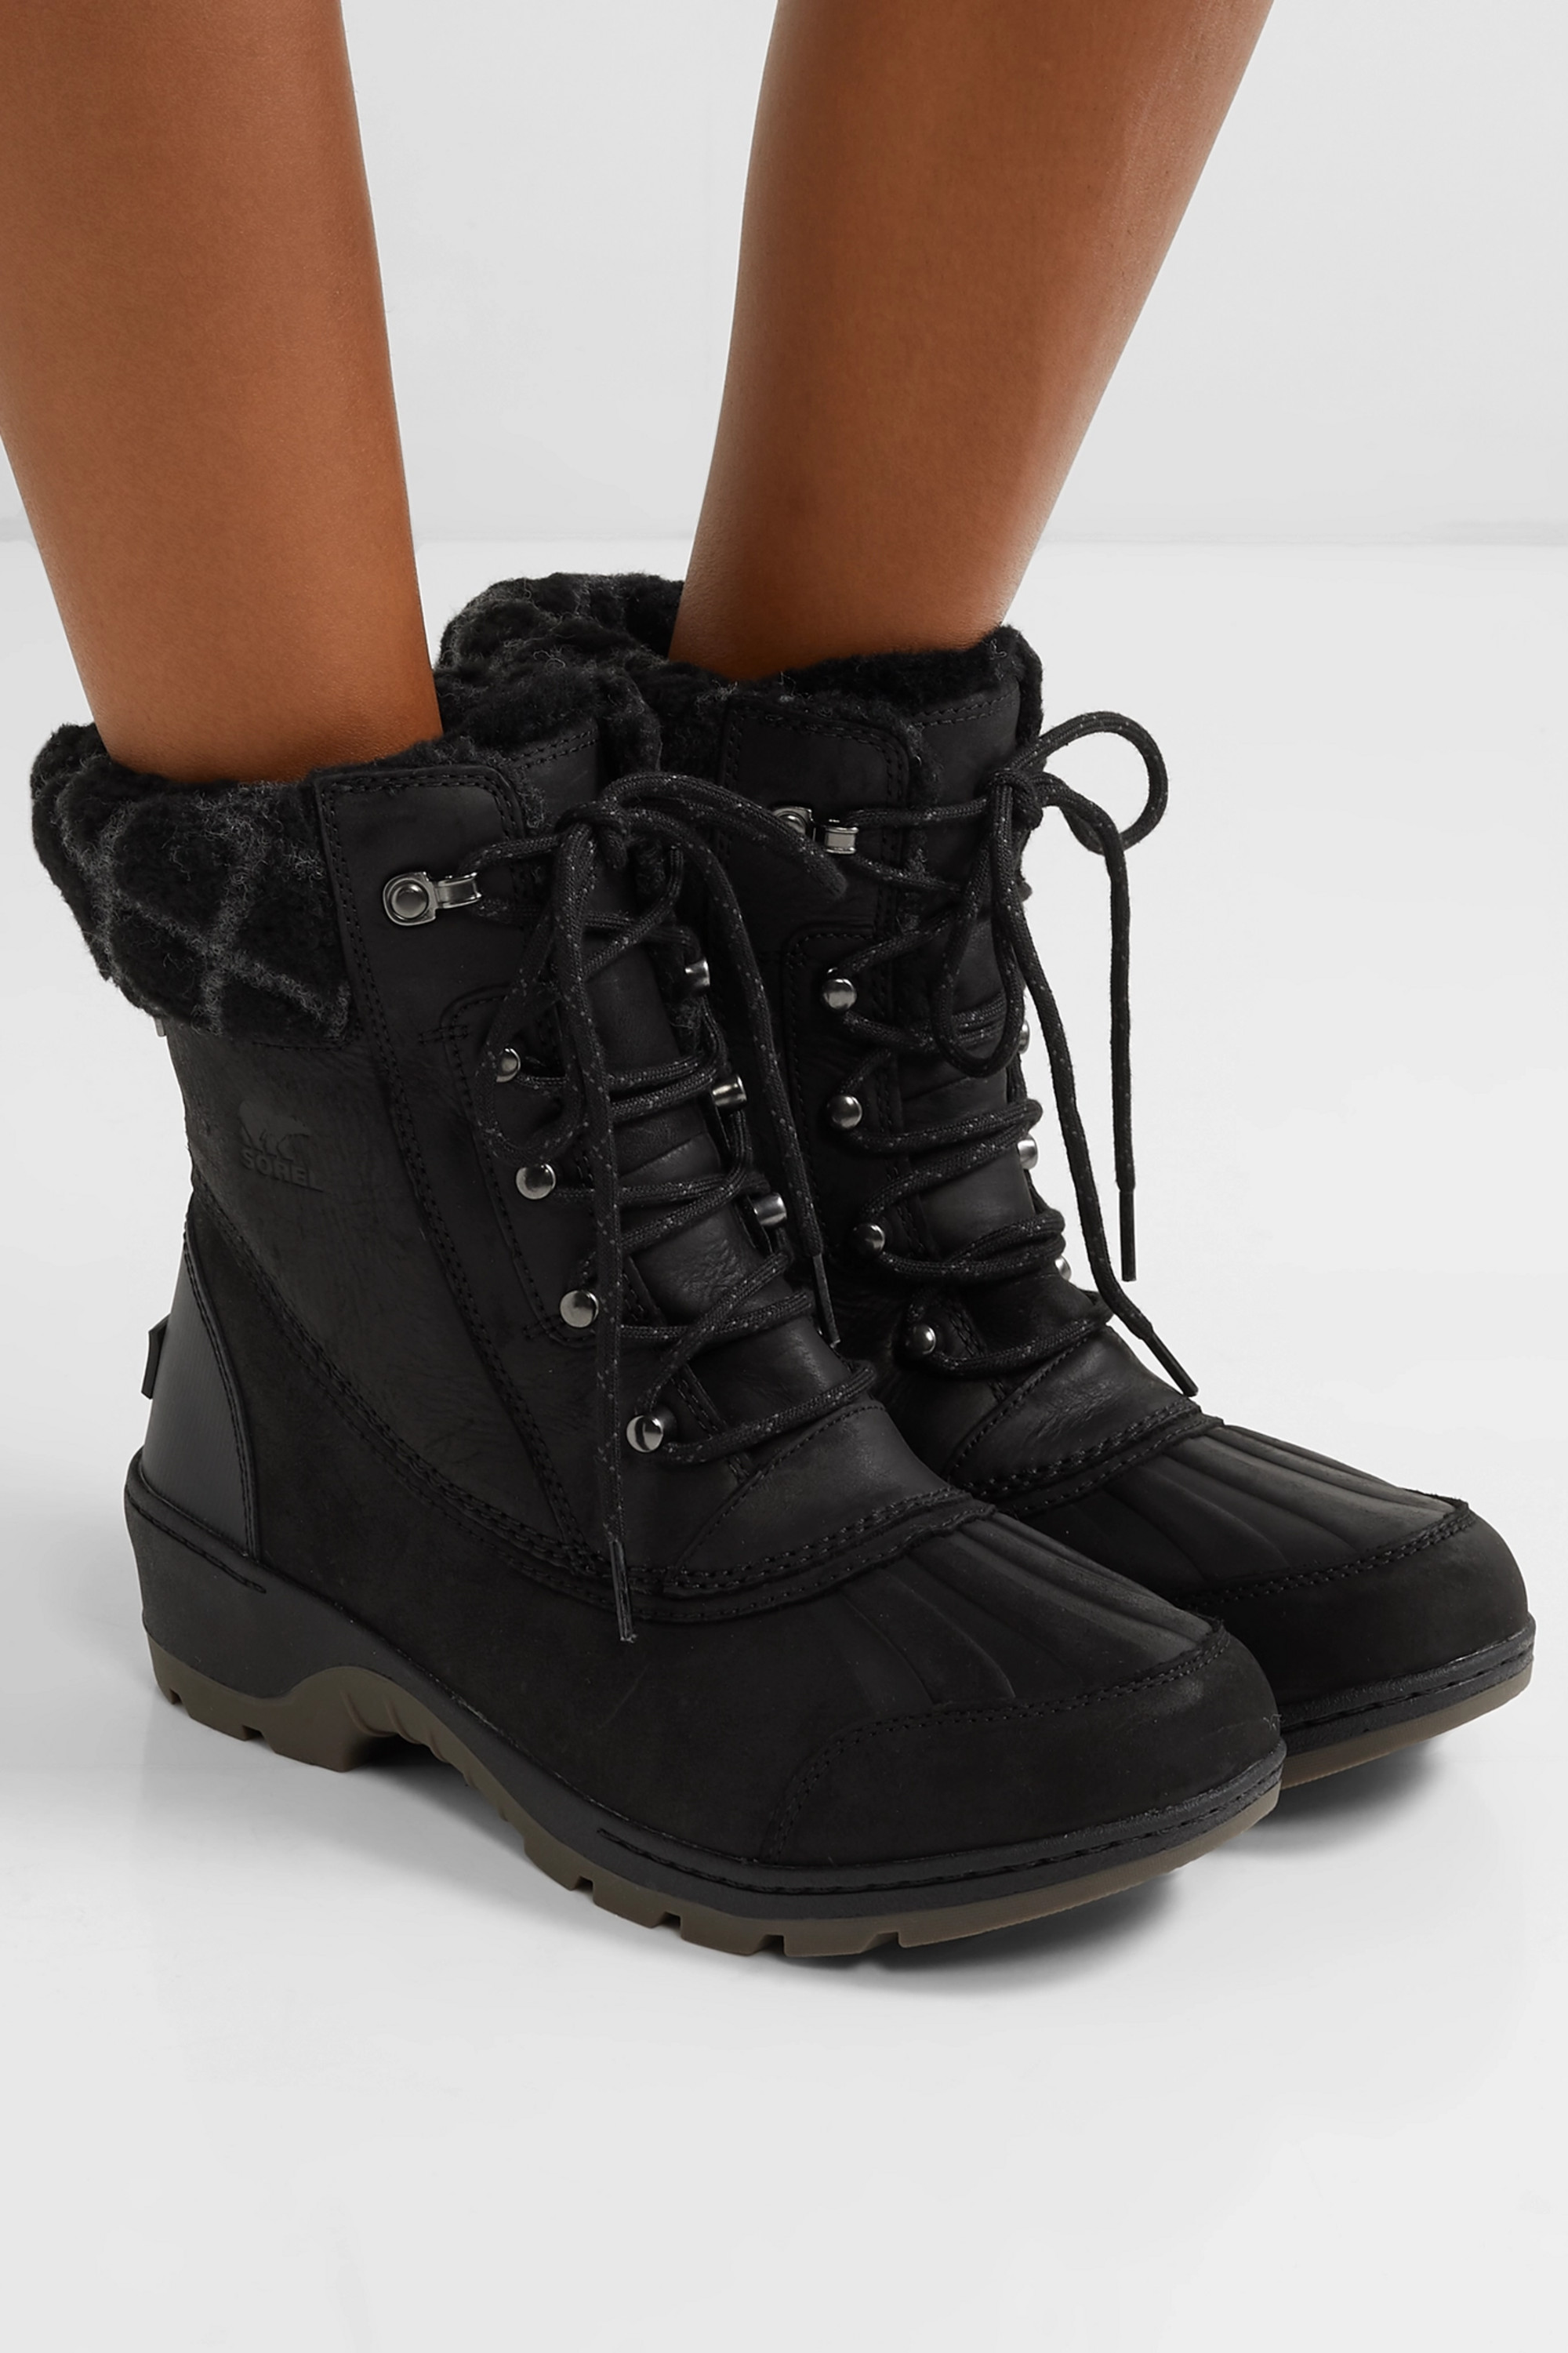 Sorel Whistler wool-trimmed waterproof leather ankle boots